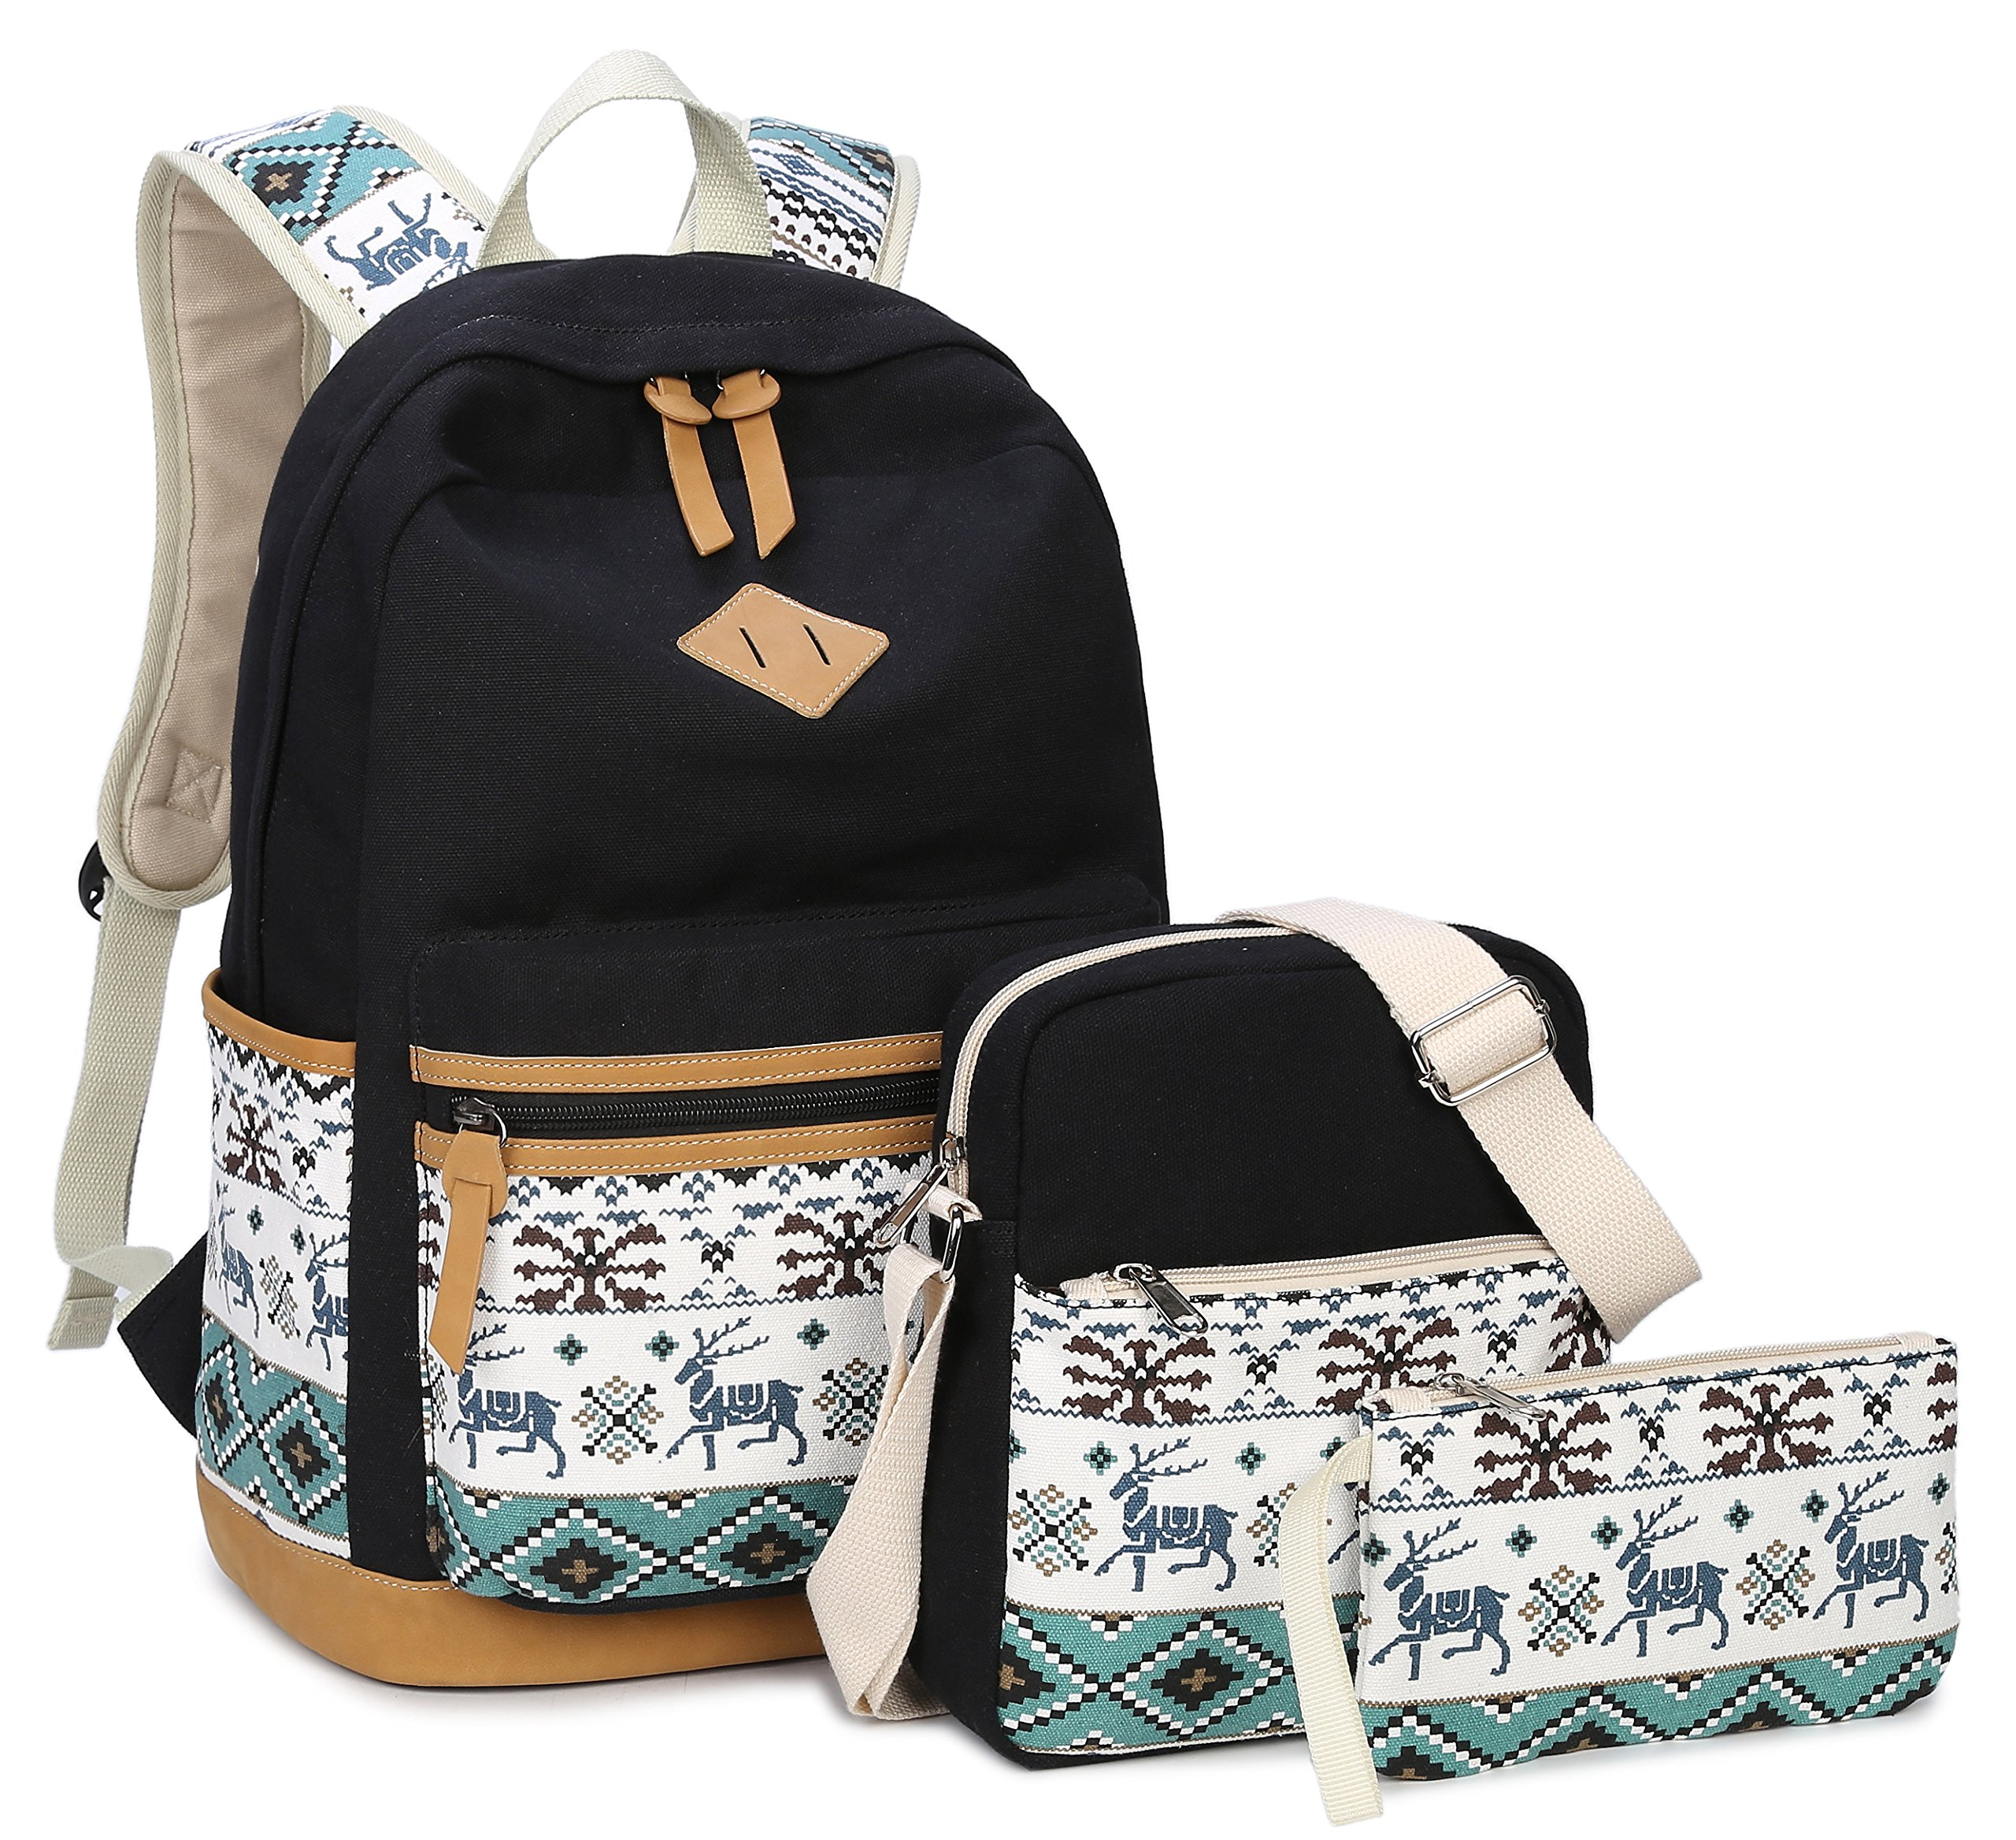 "Canvas School Backpack,Gazigo 3 in 1 Cute Animal 14"" Laptop Bookbags for Girls (8818 Black)"